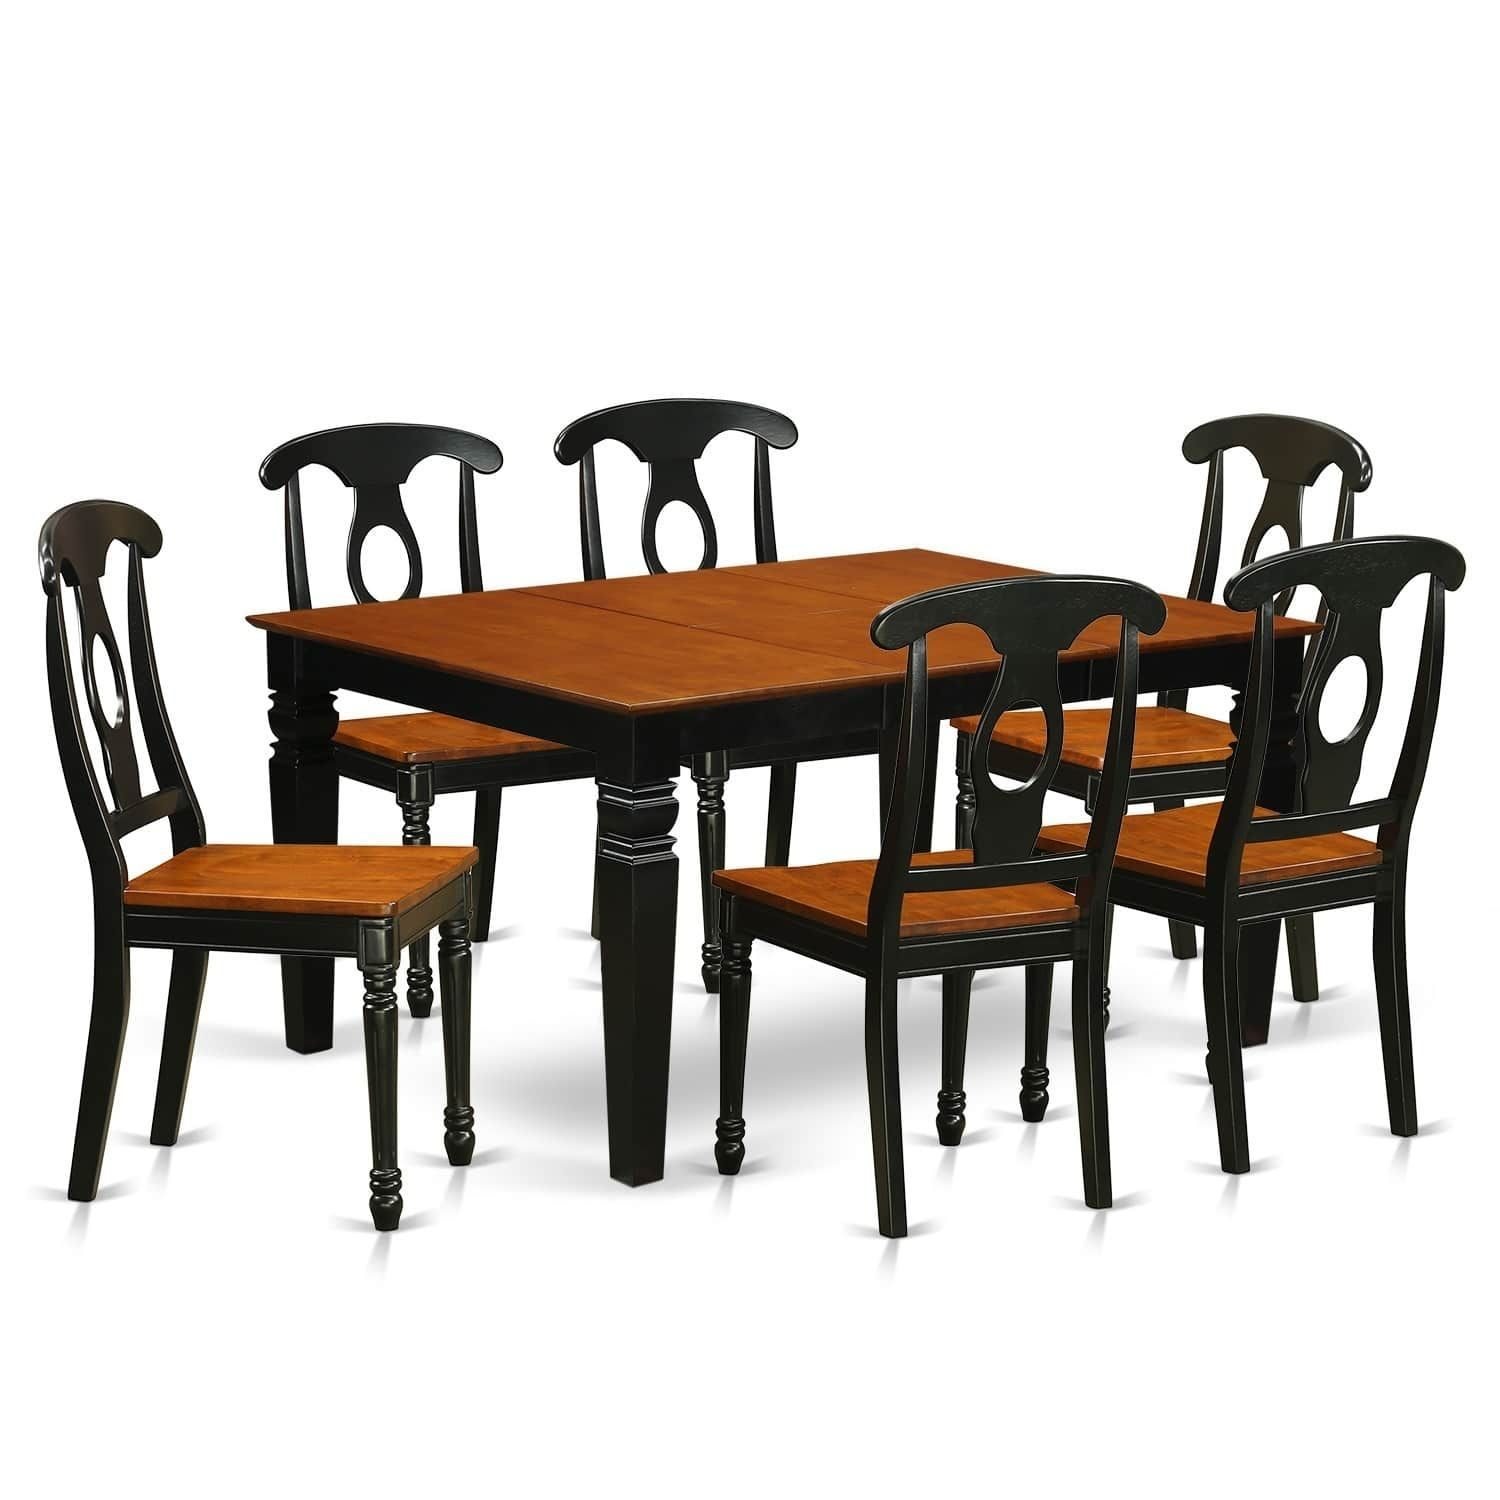 Kitchen table with bench seating and chairs  WEKEBCH  Pc table set with a Dining Table and  Kitchen Chairs